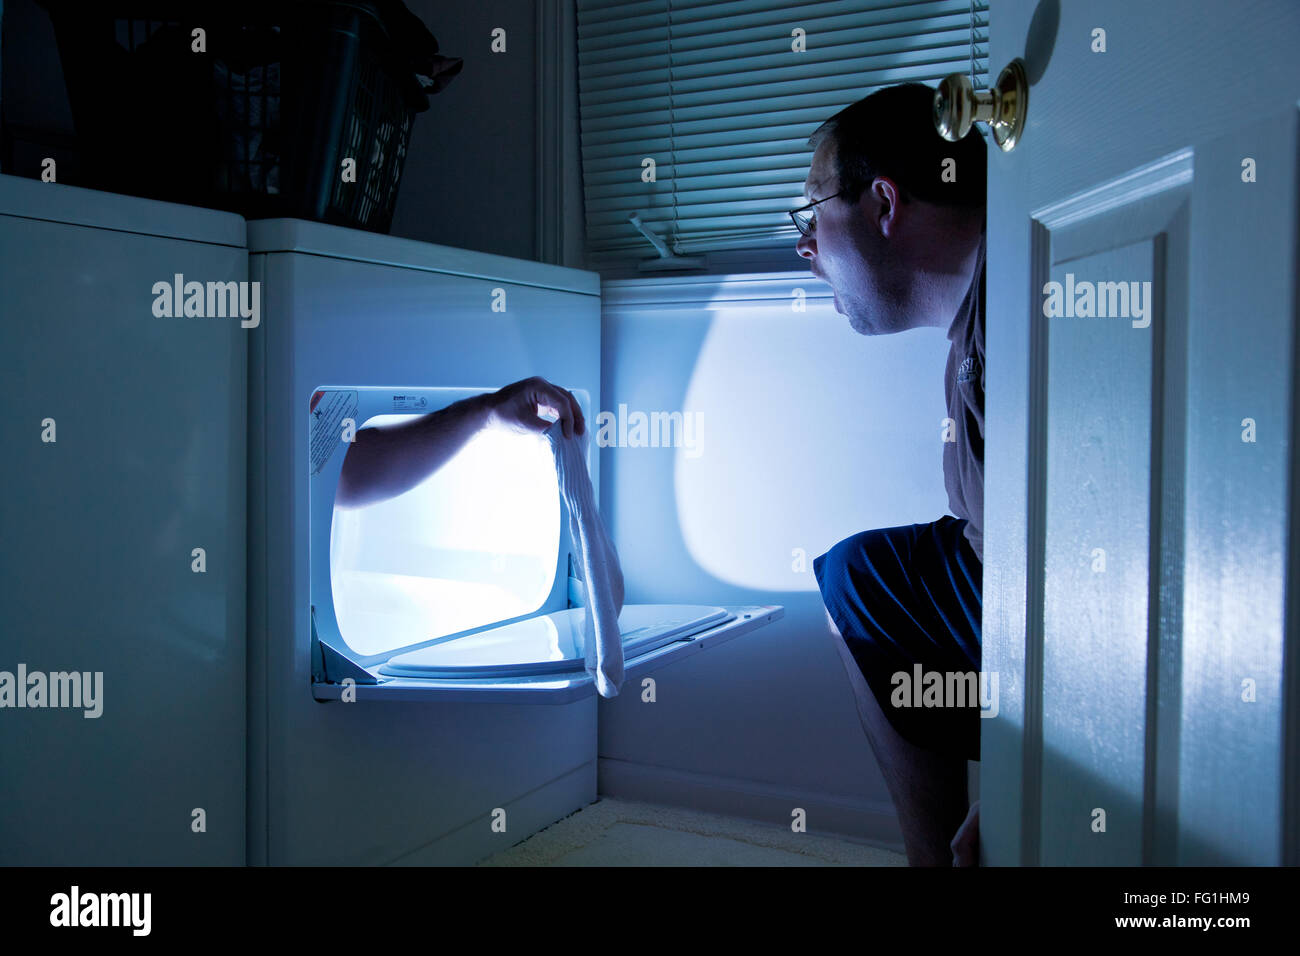 Side View Of Shocked Man Looking At Hand Holding Sock In Laundromat - Stock Image